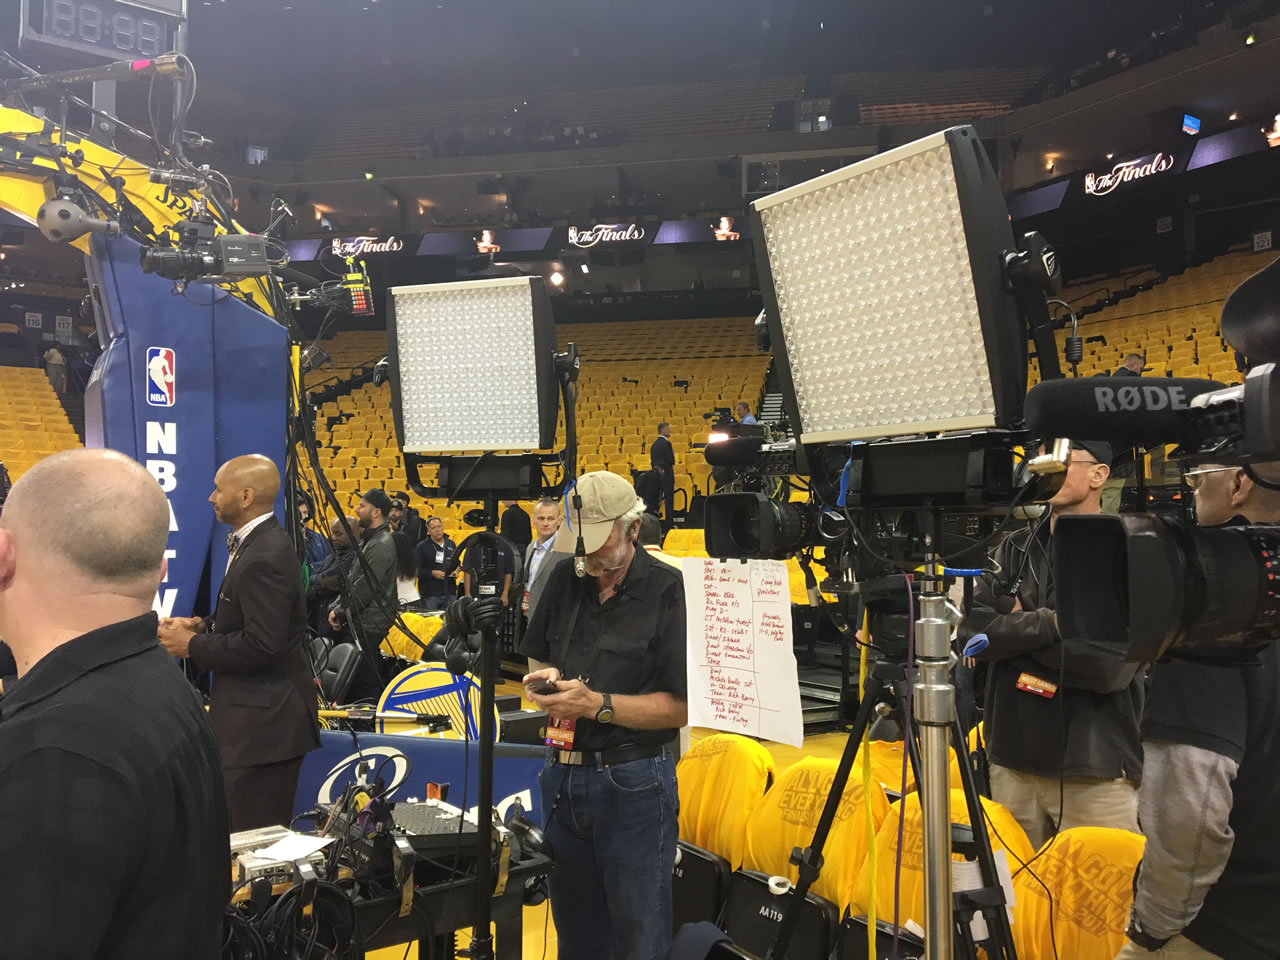 <div class='meta'><div class='origin-logo' data-origin='none'></div><span class='caption-text' data-credit='KGO-TV'>The &#34;After the Game&#34; crew sets up after game 2 of the NBA Finals in Oakland, Calif. on Sunday, June 4, 2017.</span></div>